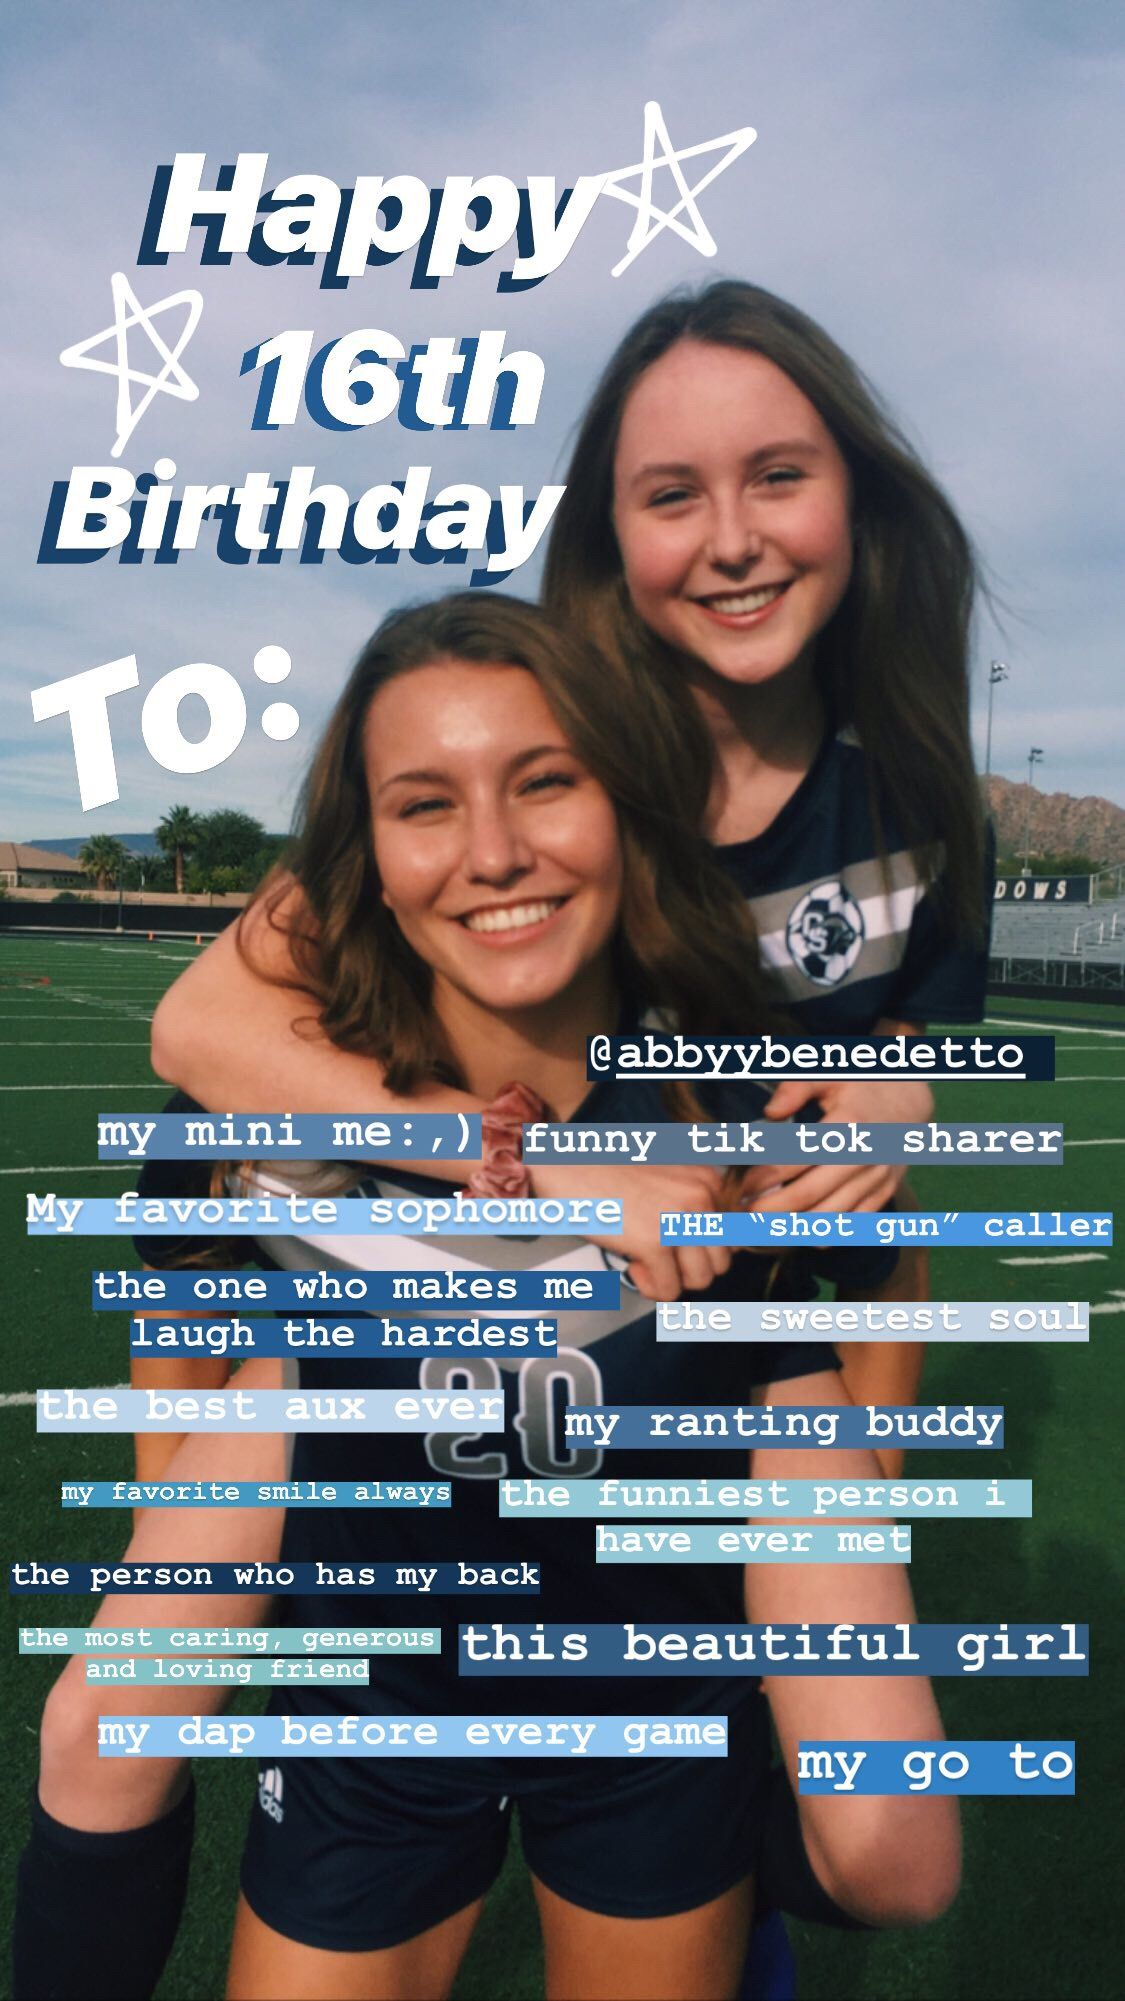 Pin By Baileybyrd On Insta Stories In 2020 Selfie Ideas Instagram Birthday Captions Instagram Happy Birthday Quotes For Friends